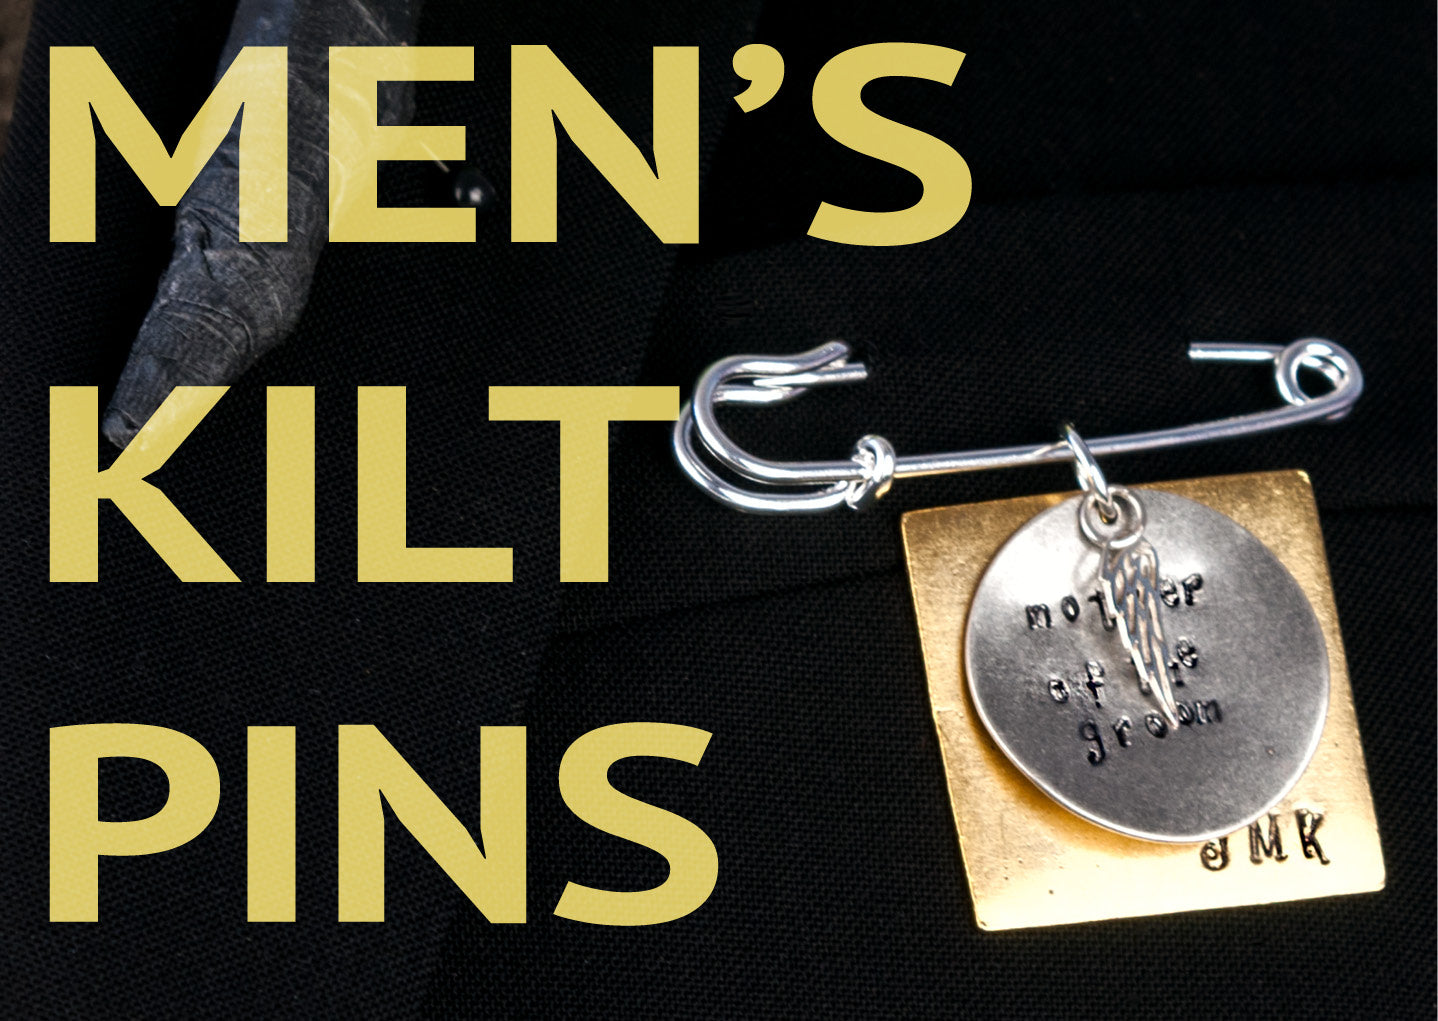 Men's kilt pins, heartfelt gifts to honor those walking with you